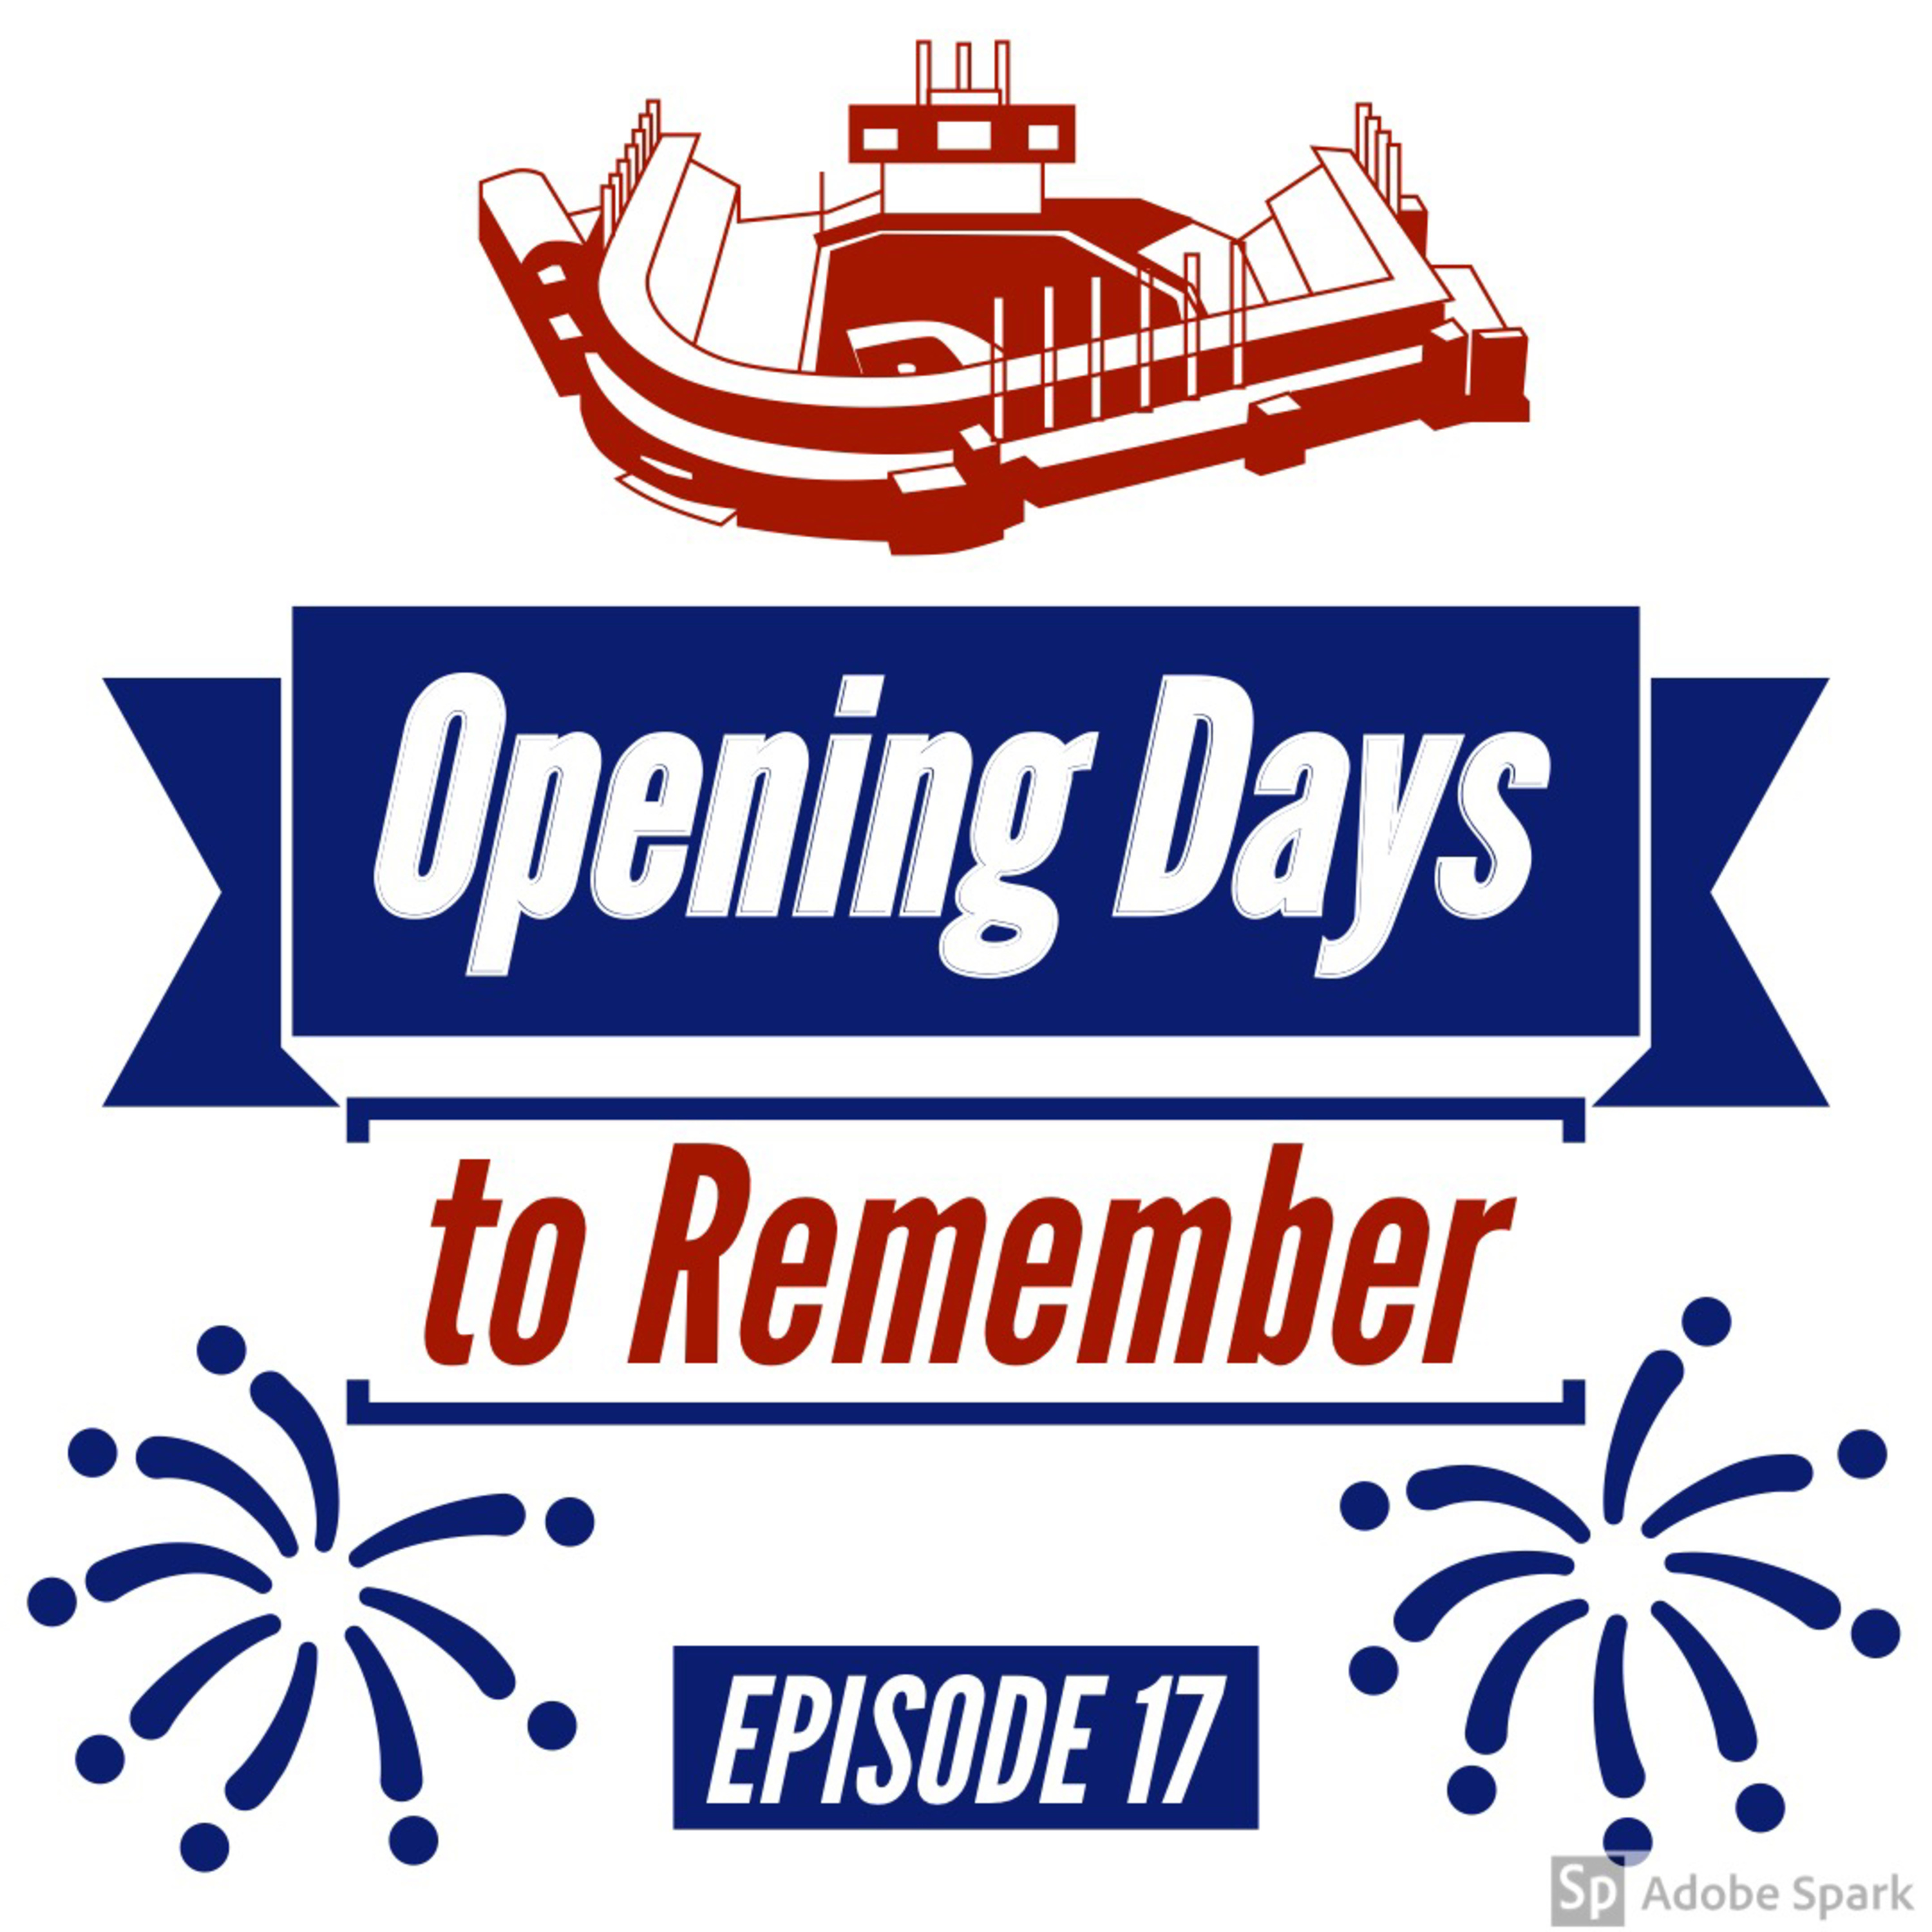 Episode 17: Opening Days to Remember